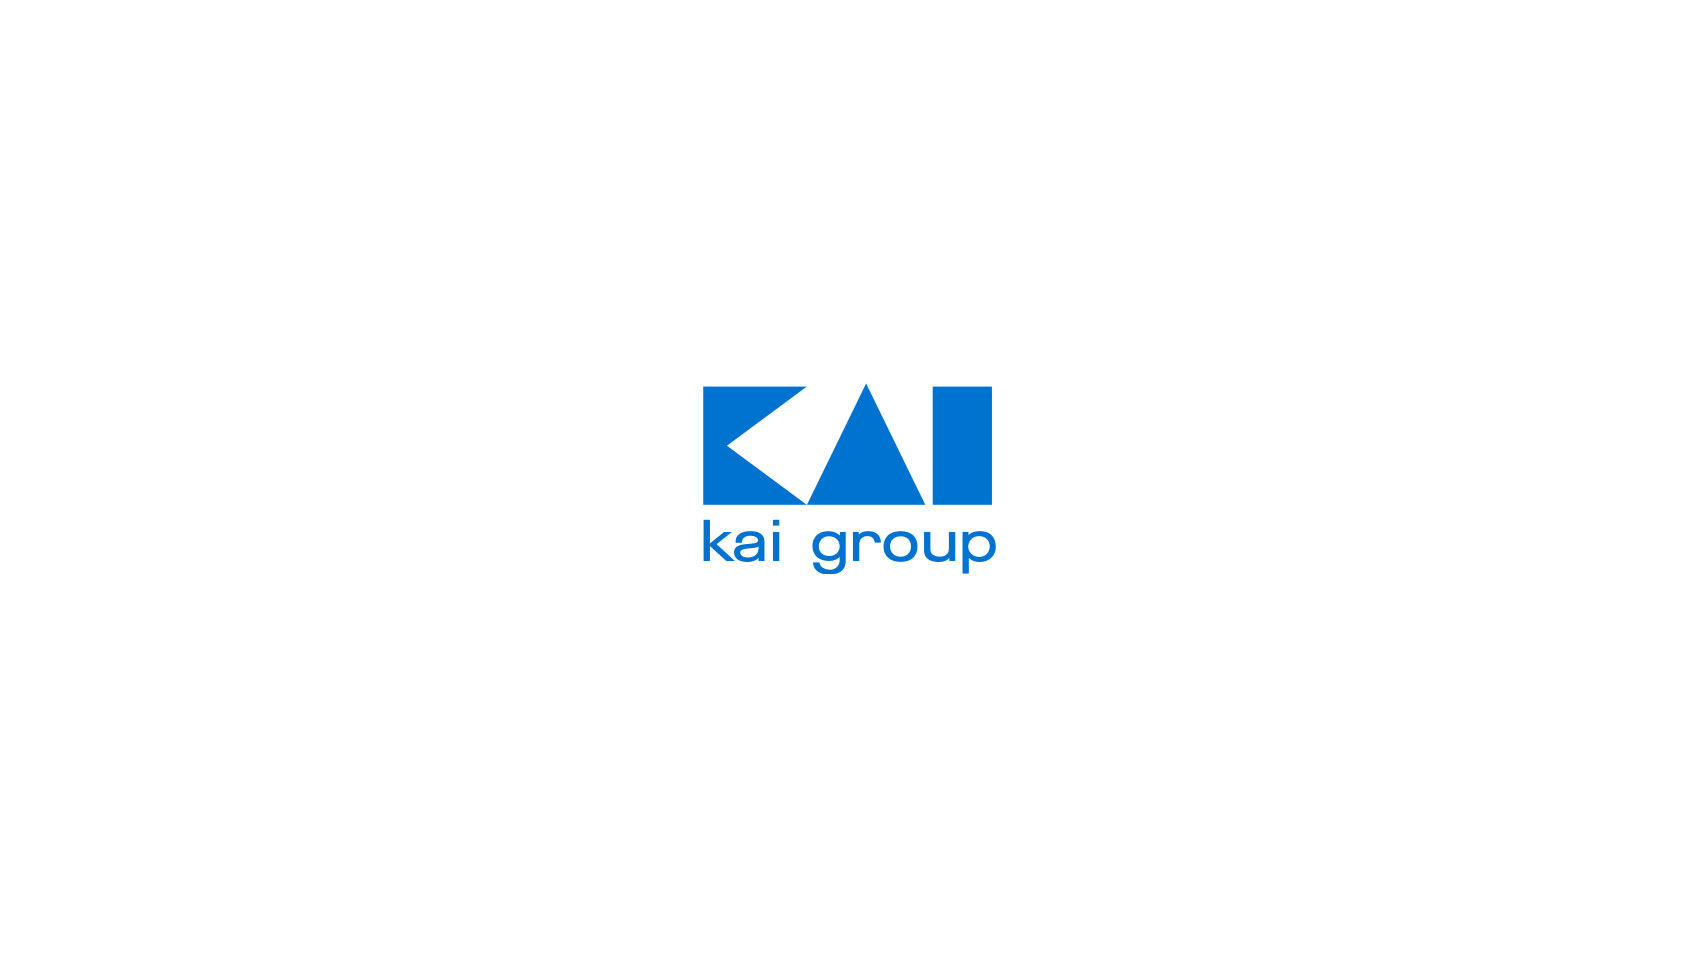 kai-group